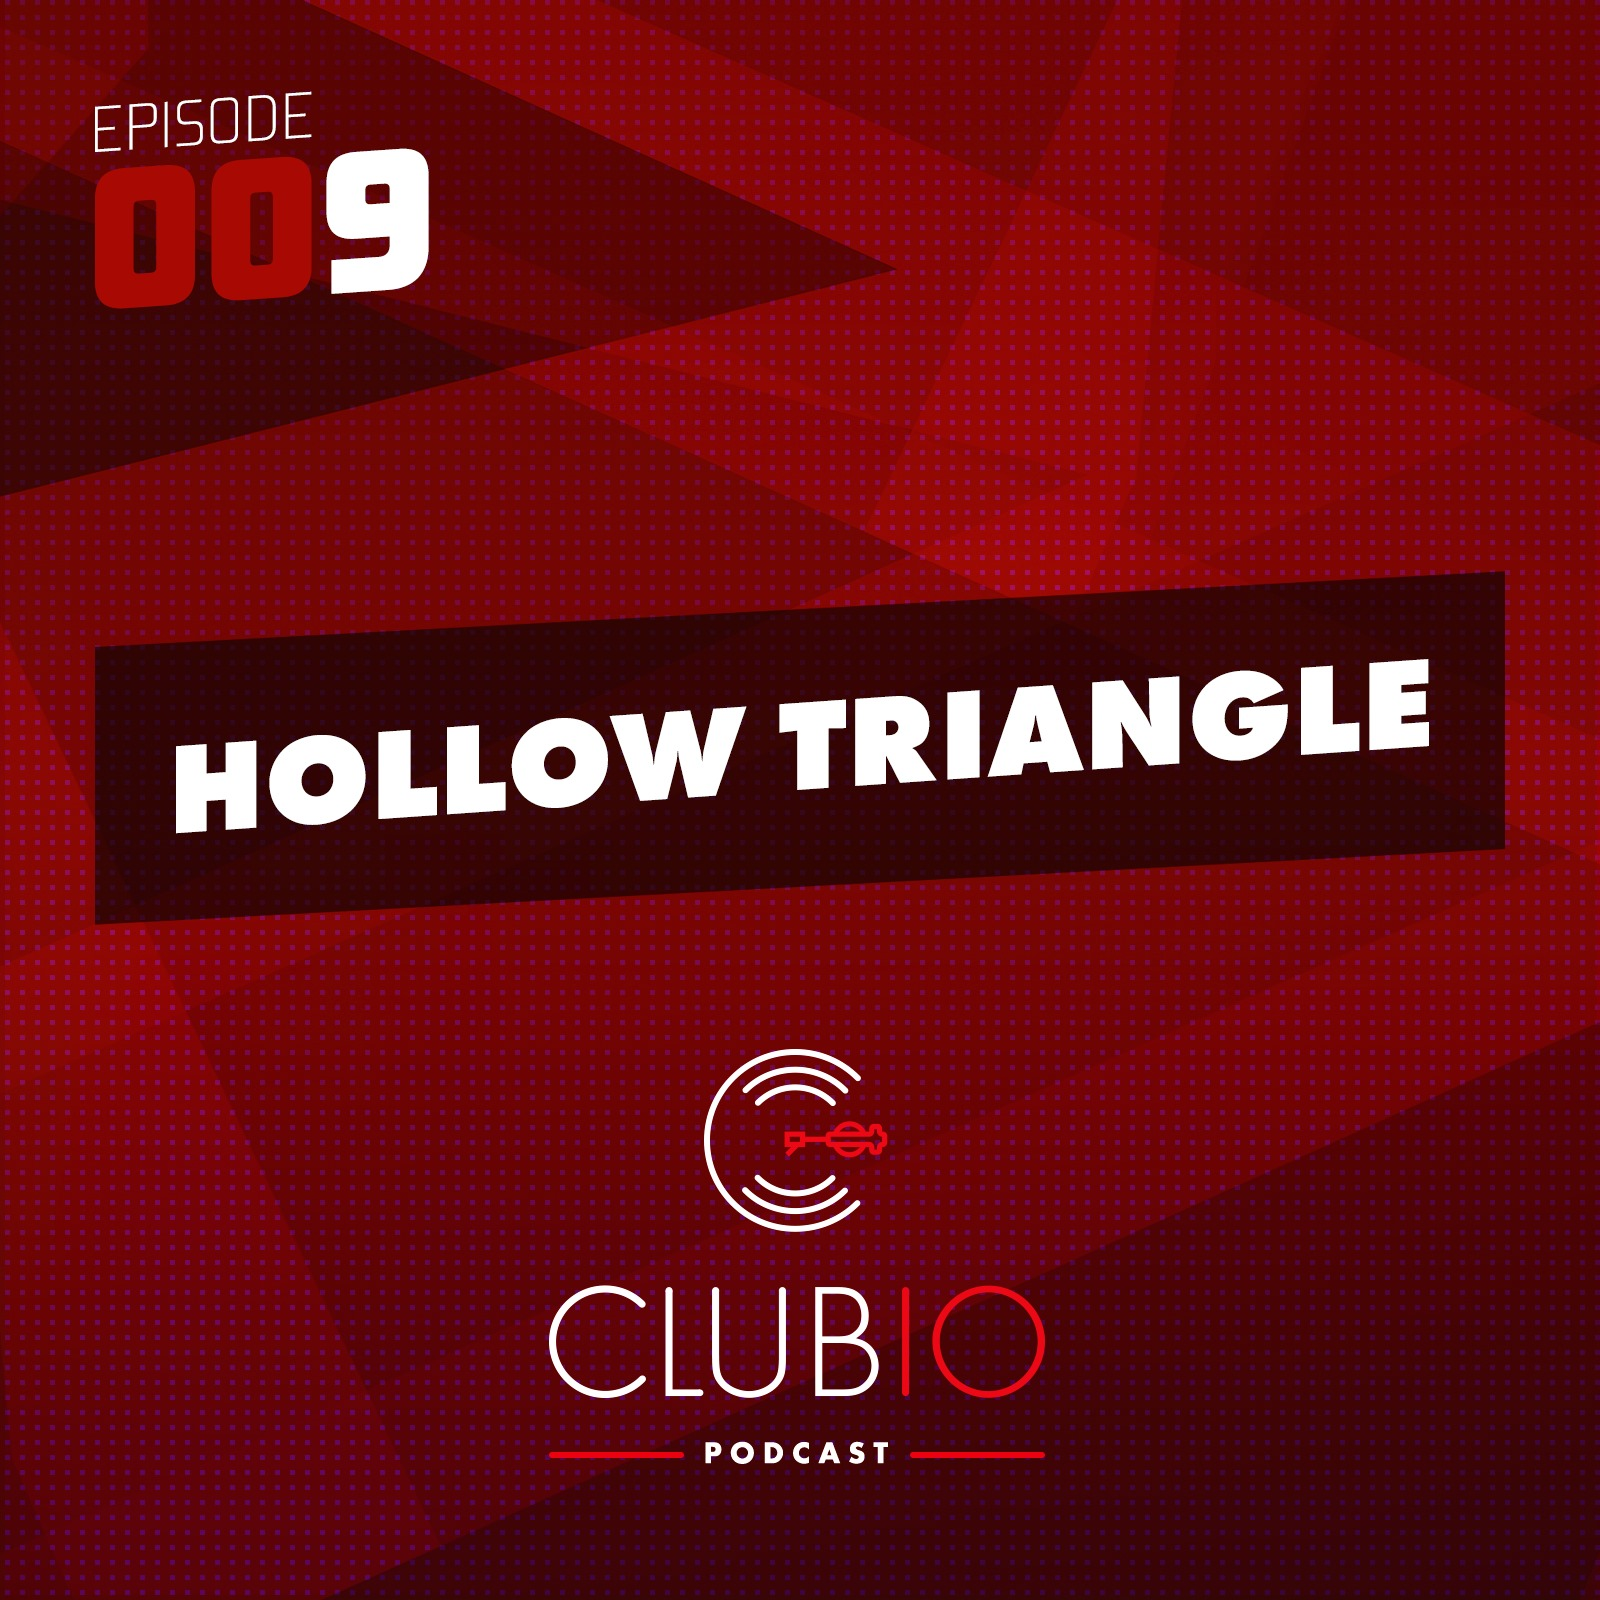 Clubio Podcast 009 - Hollow Triangle